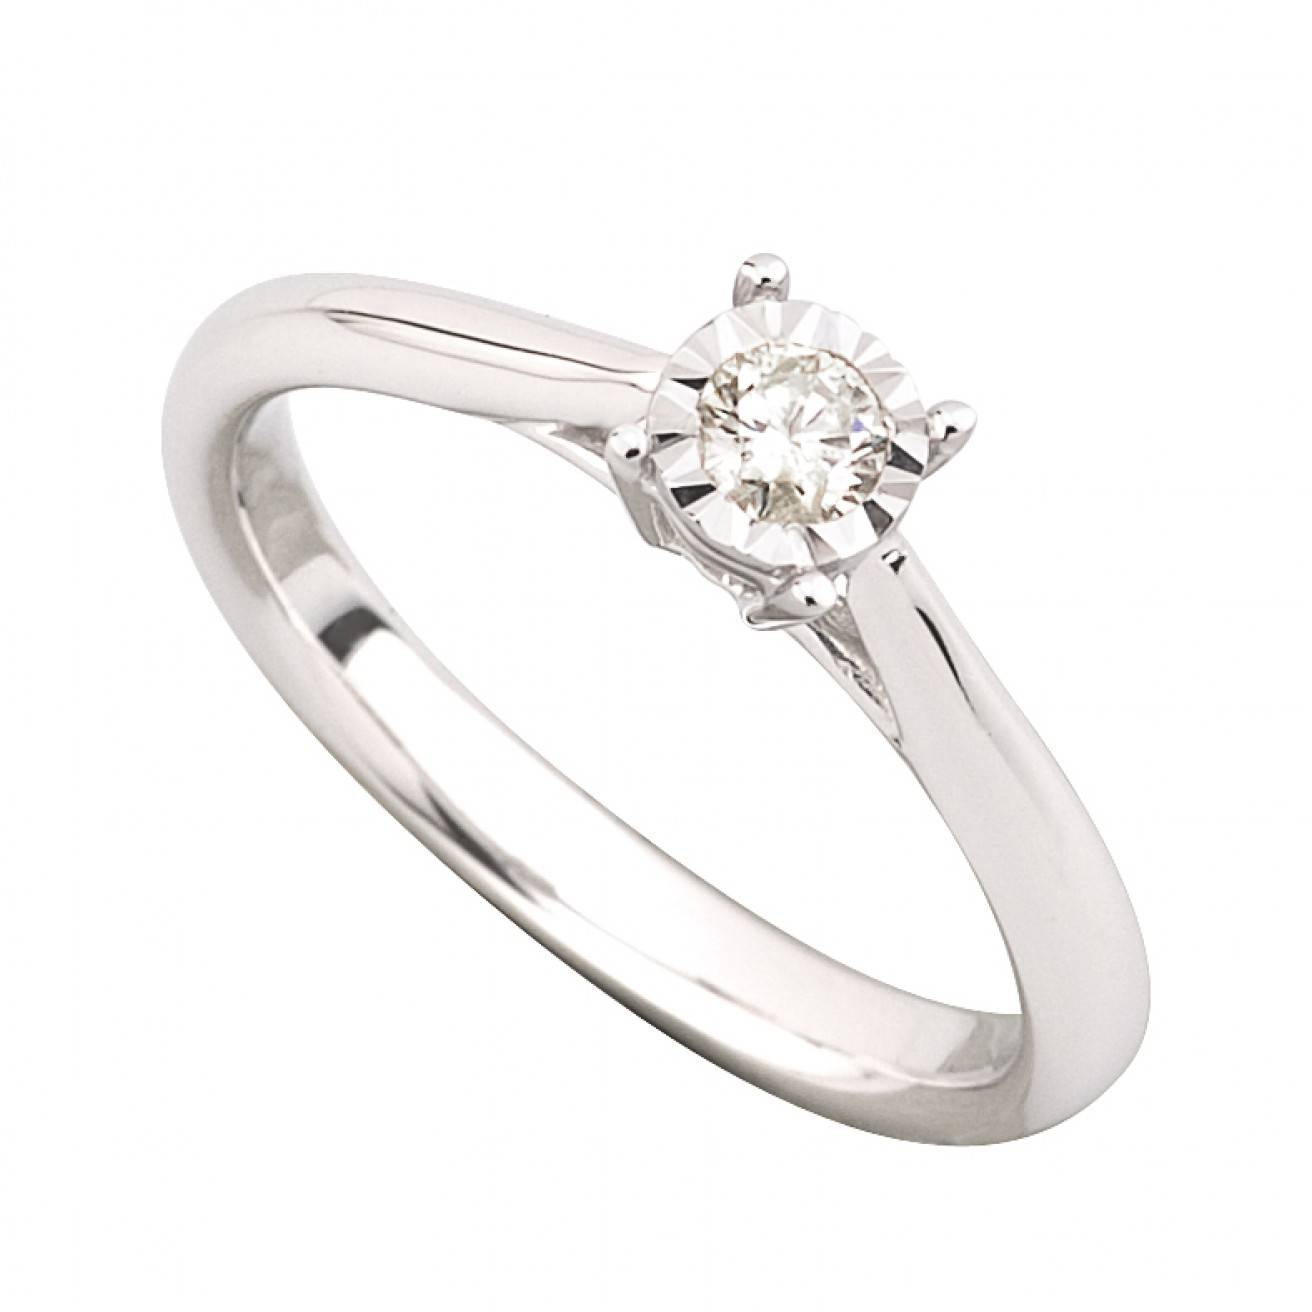 Buy A White Gold Engagement Ring Fraser Hart With And Wedding Rings